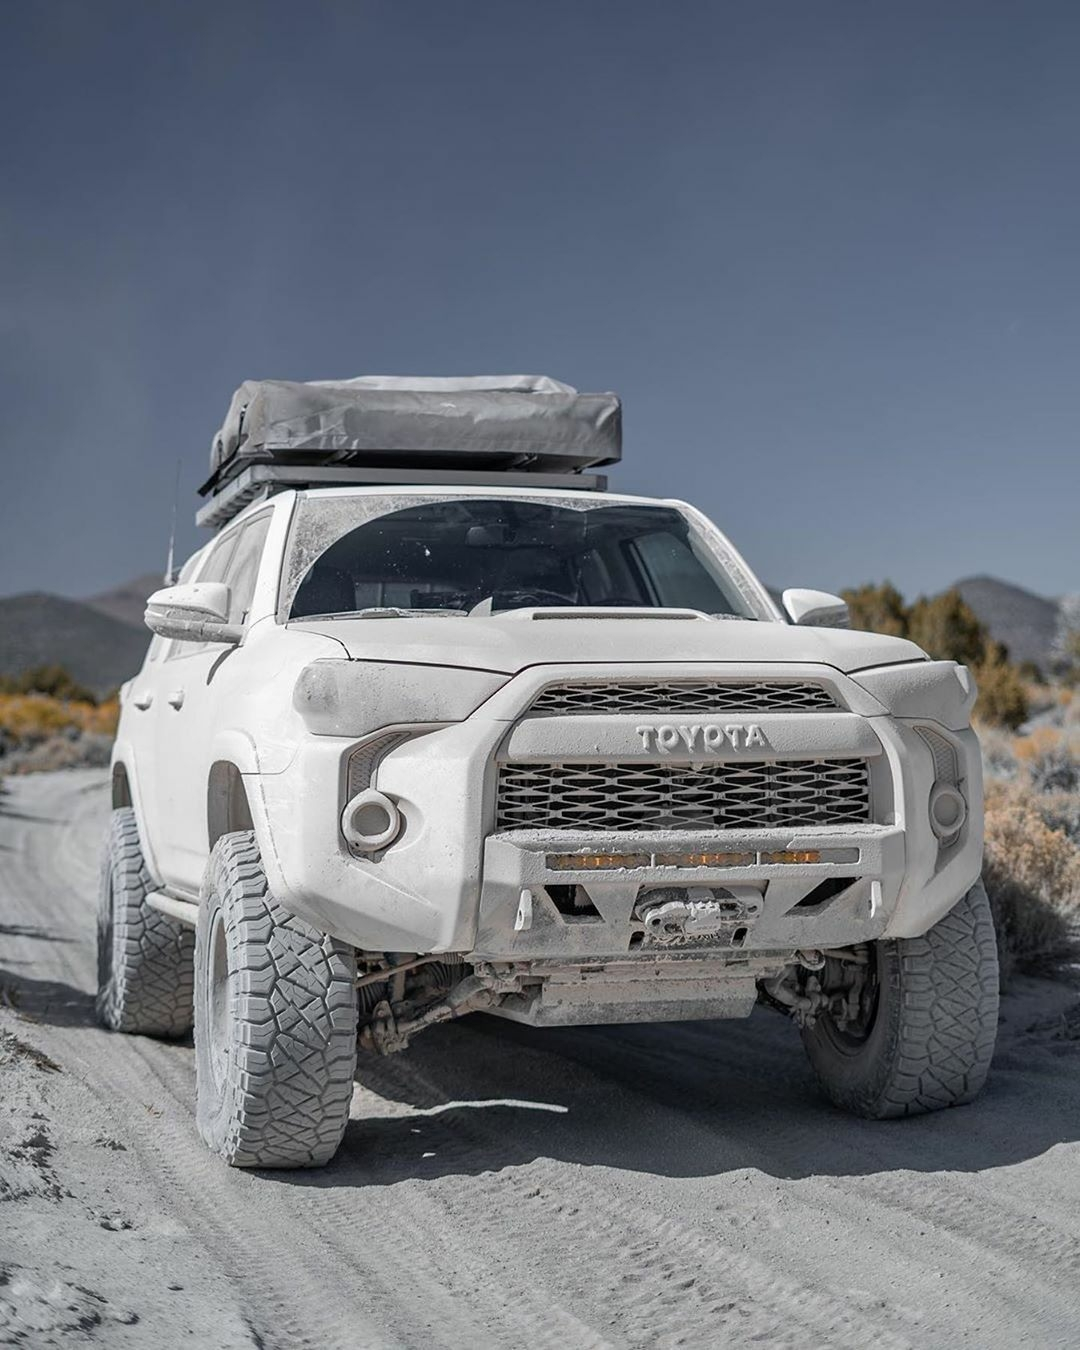 toyota truck covered in white dust